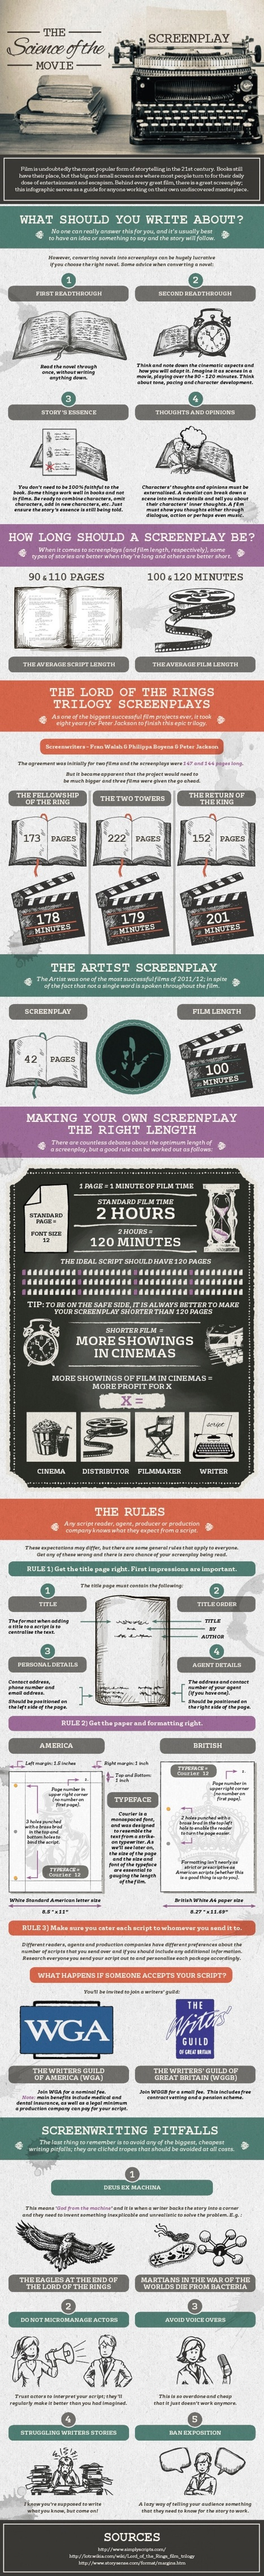 Screenwriting Essentials in Infographic Form | PRODUCTION of Video Music clips and songs | Scoop.it